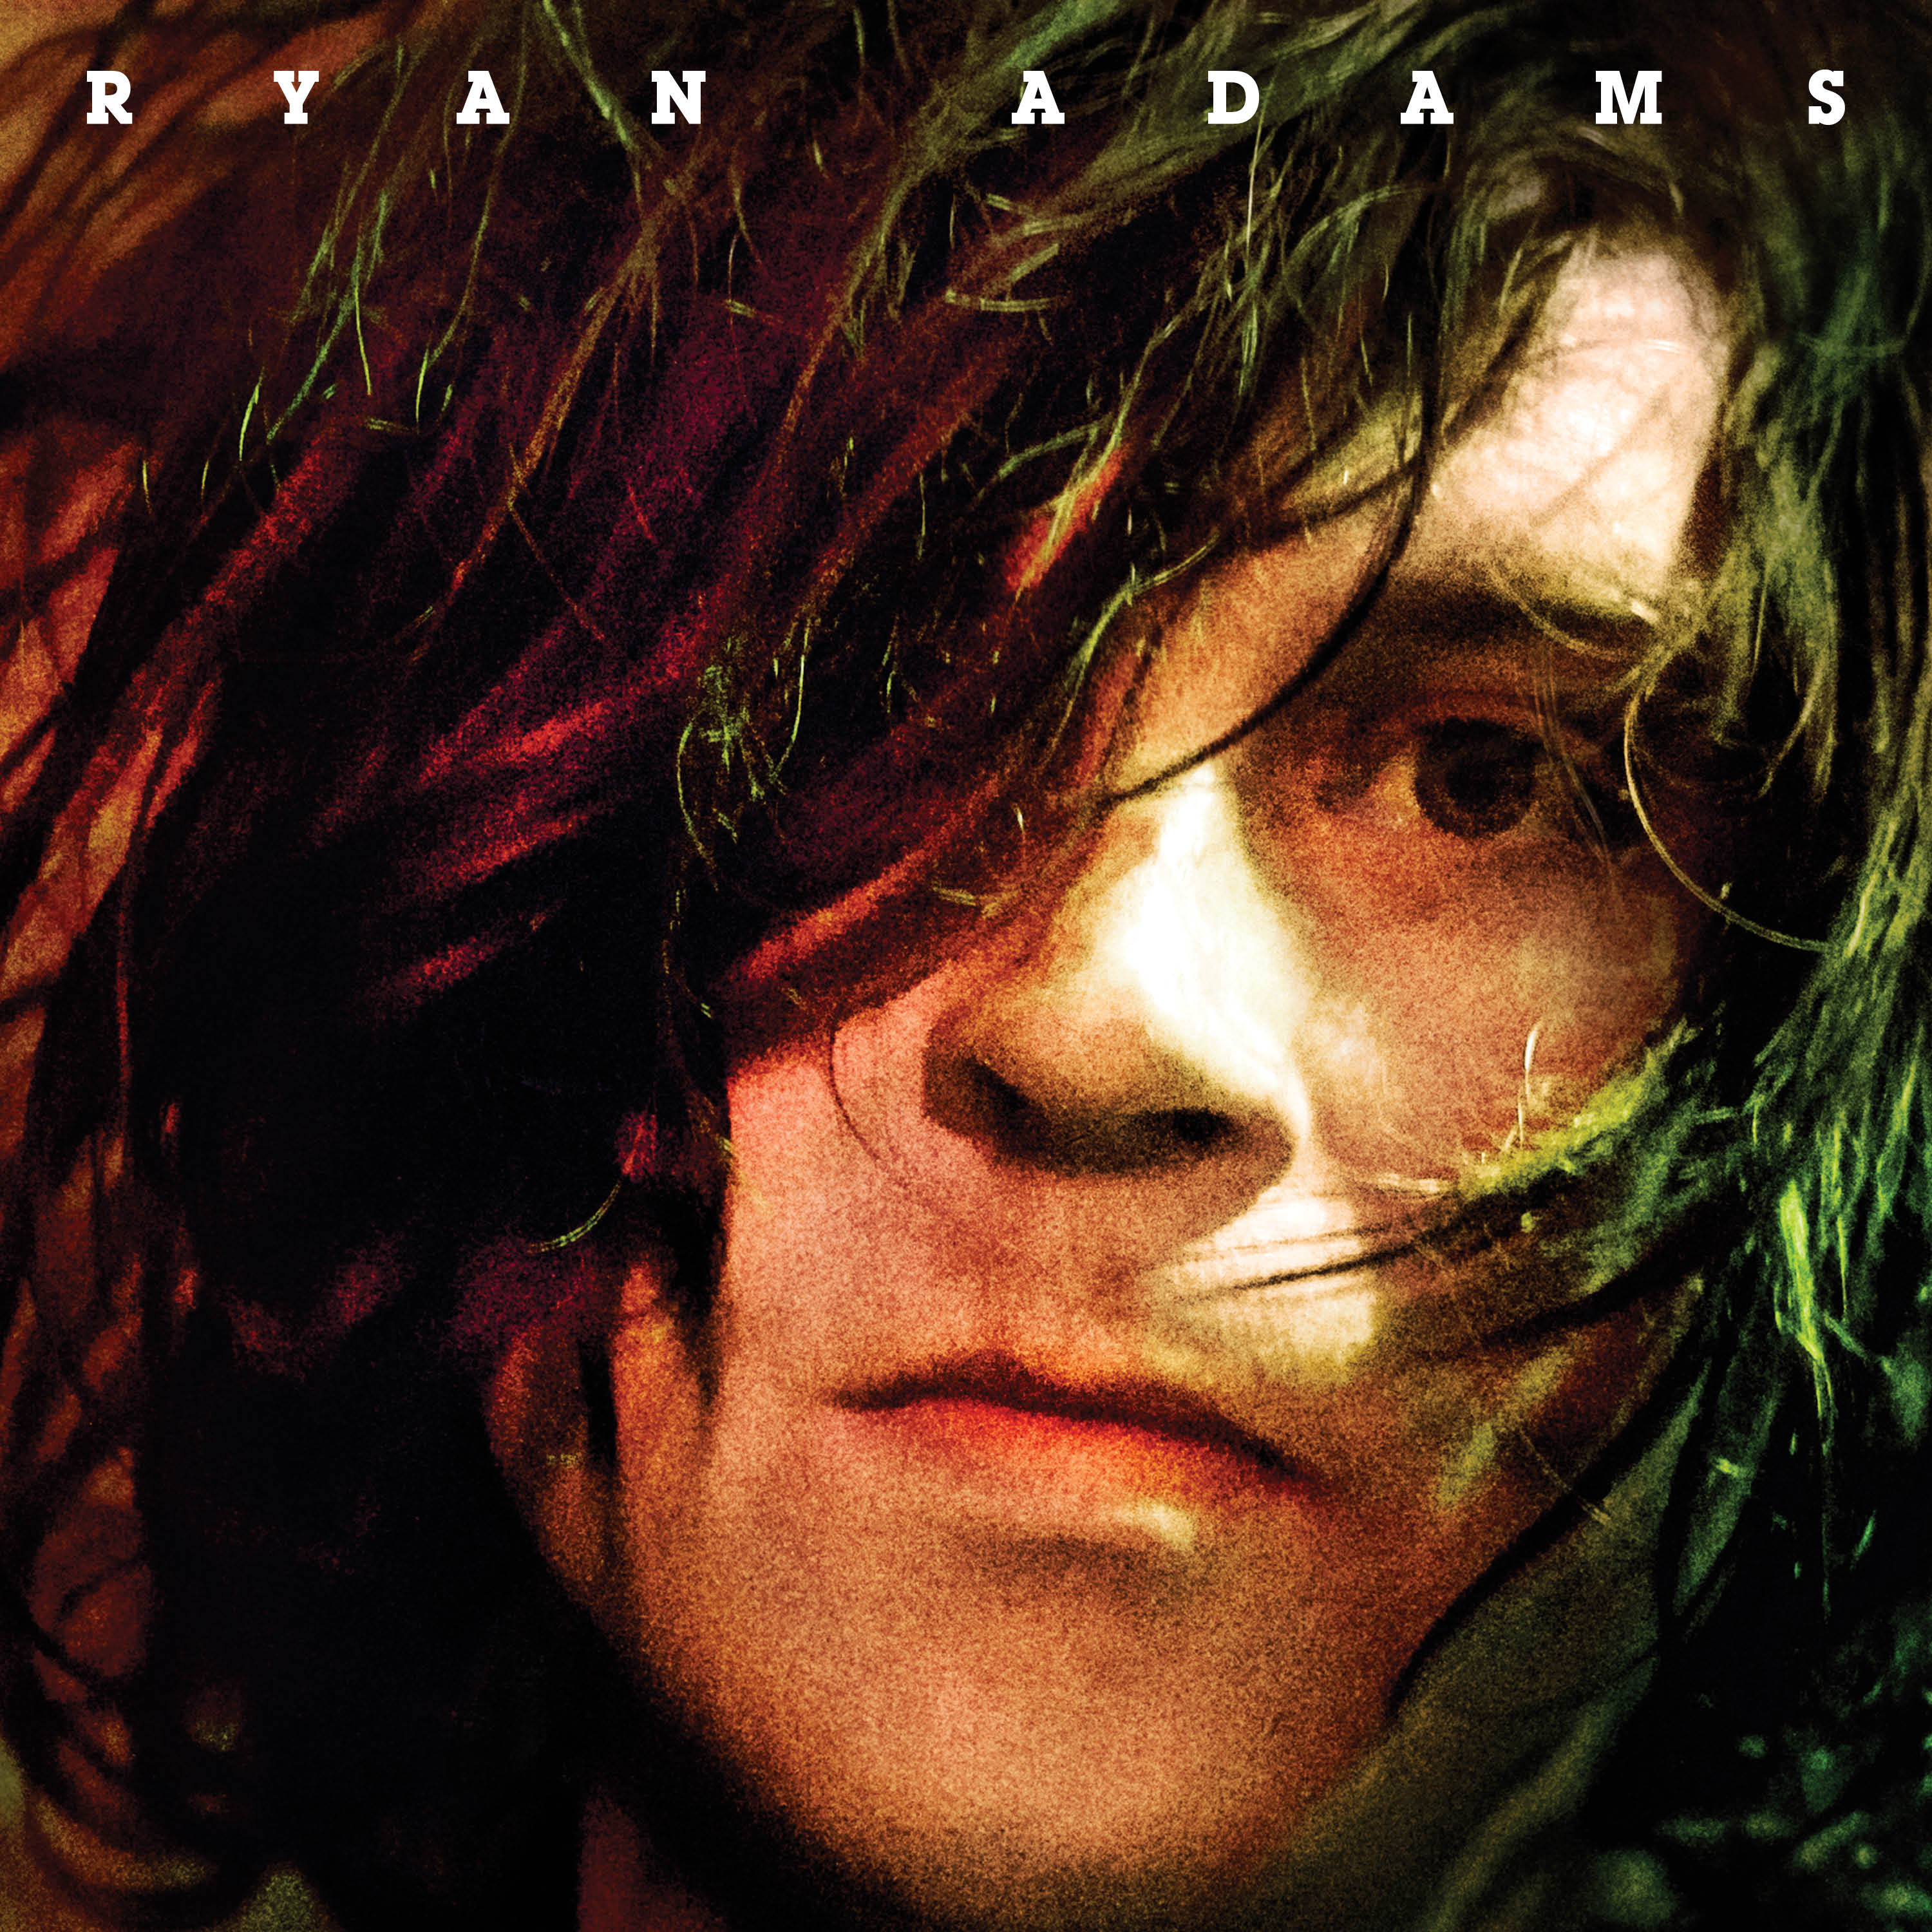 RYAN ADAMS IS HIMSELF ON SELF-TITLED ALBUM – FOR BETTER OR WORSE